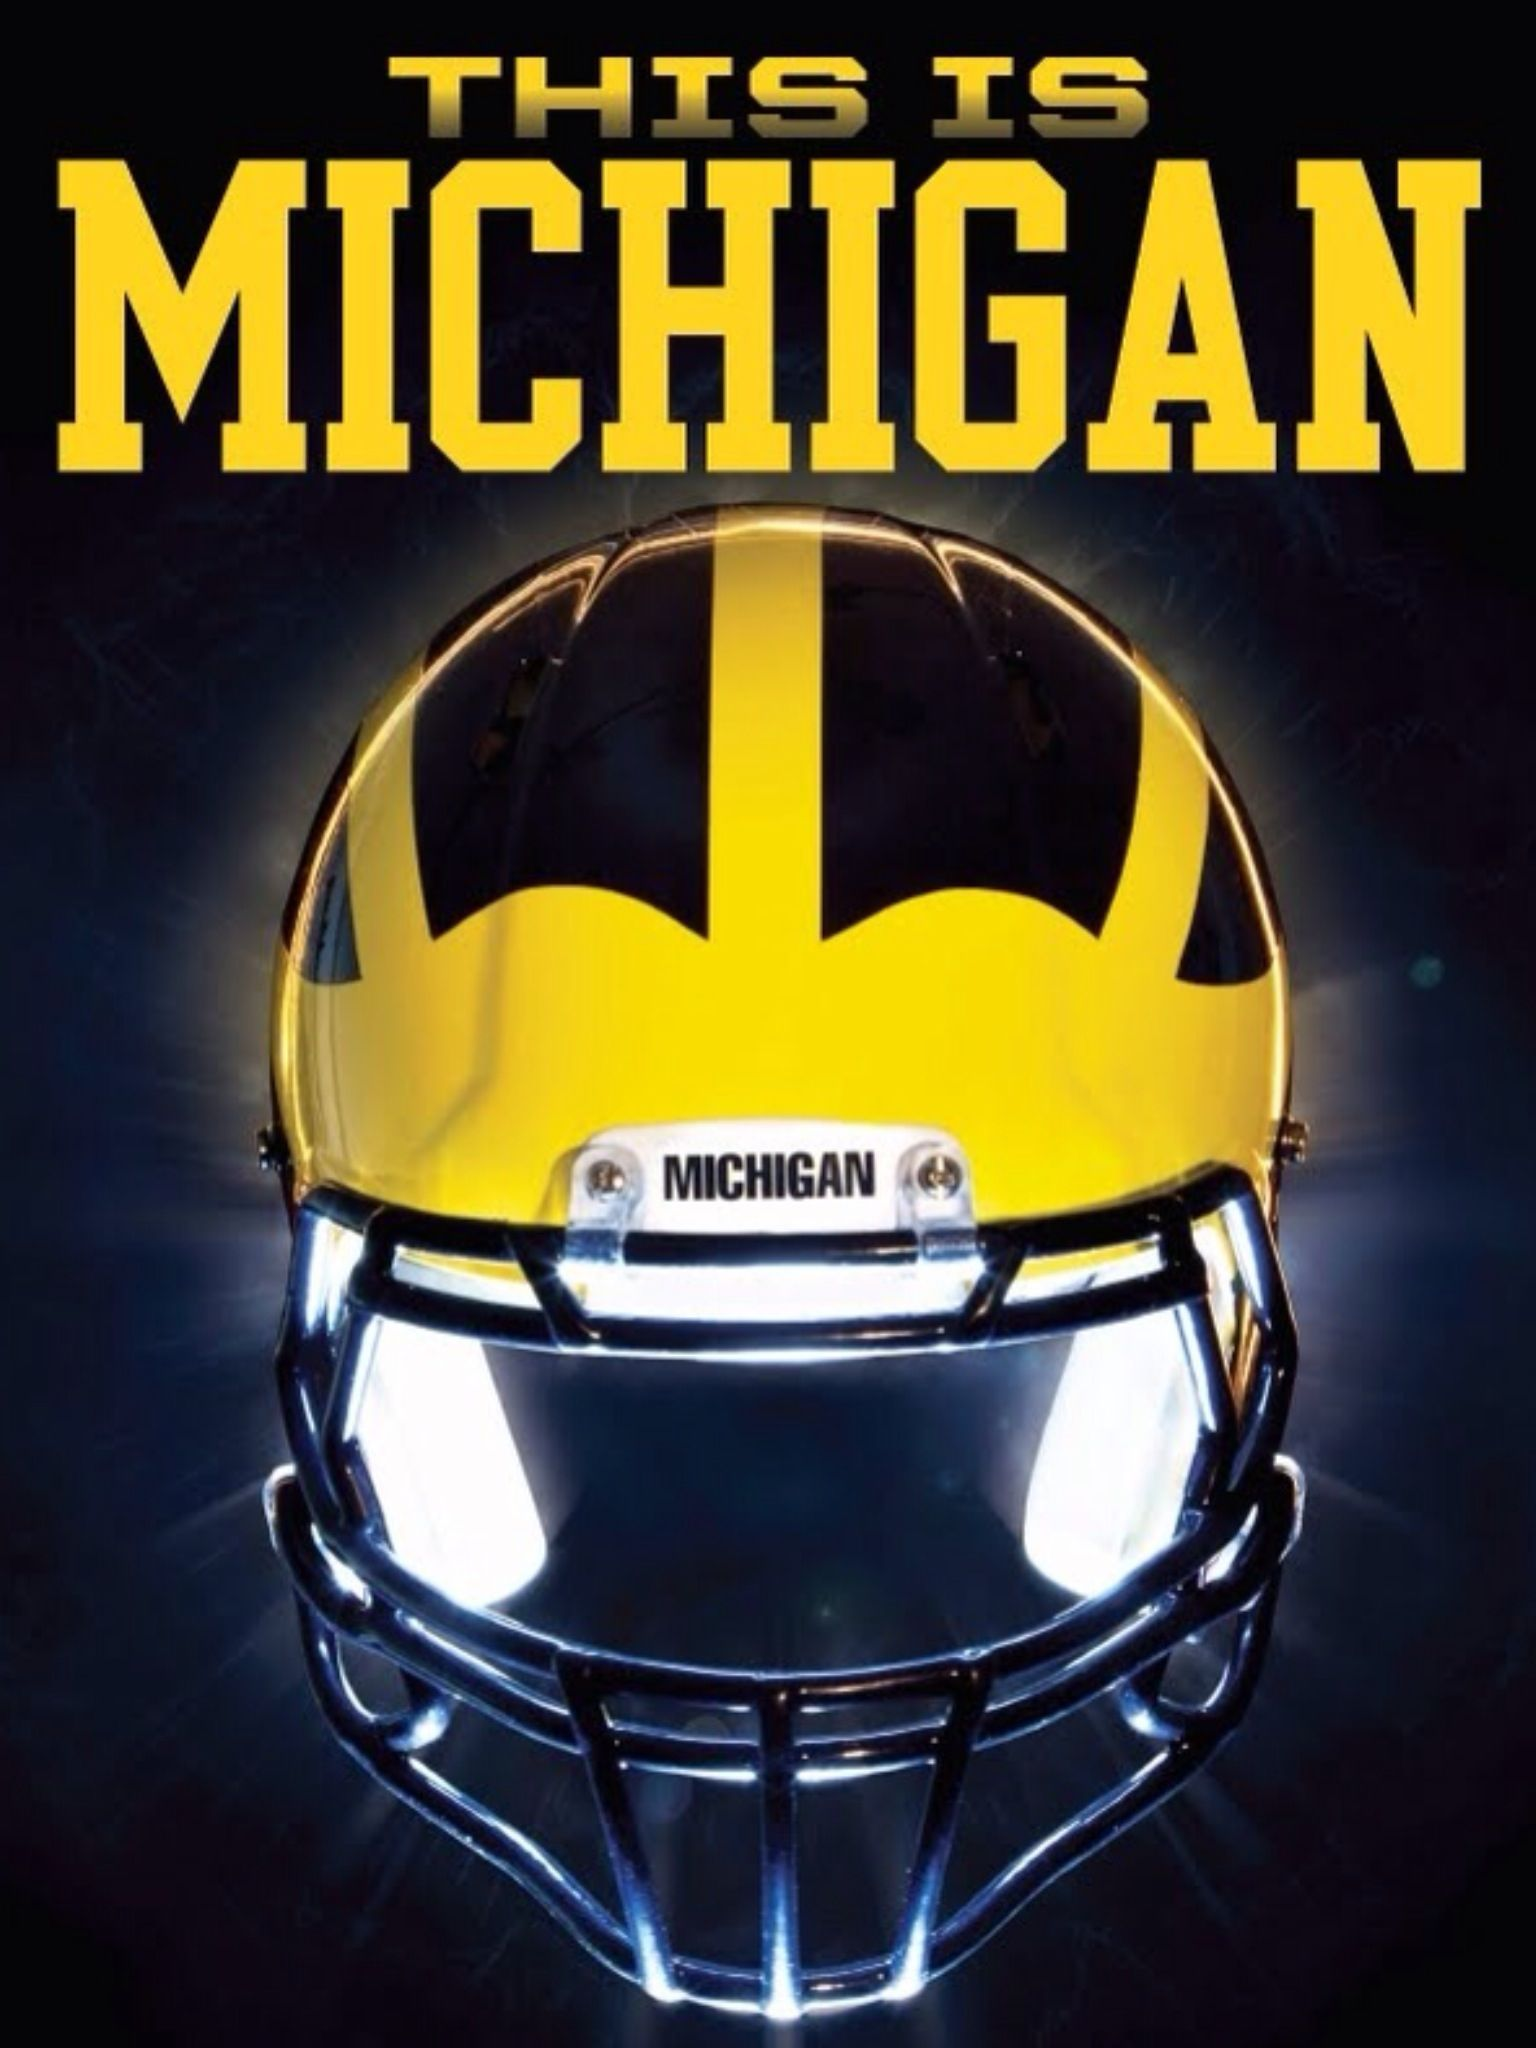 This Is Michigan Go Blue Michigan Wolverines Football